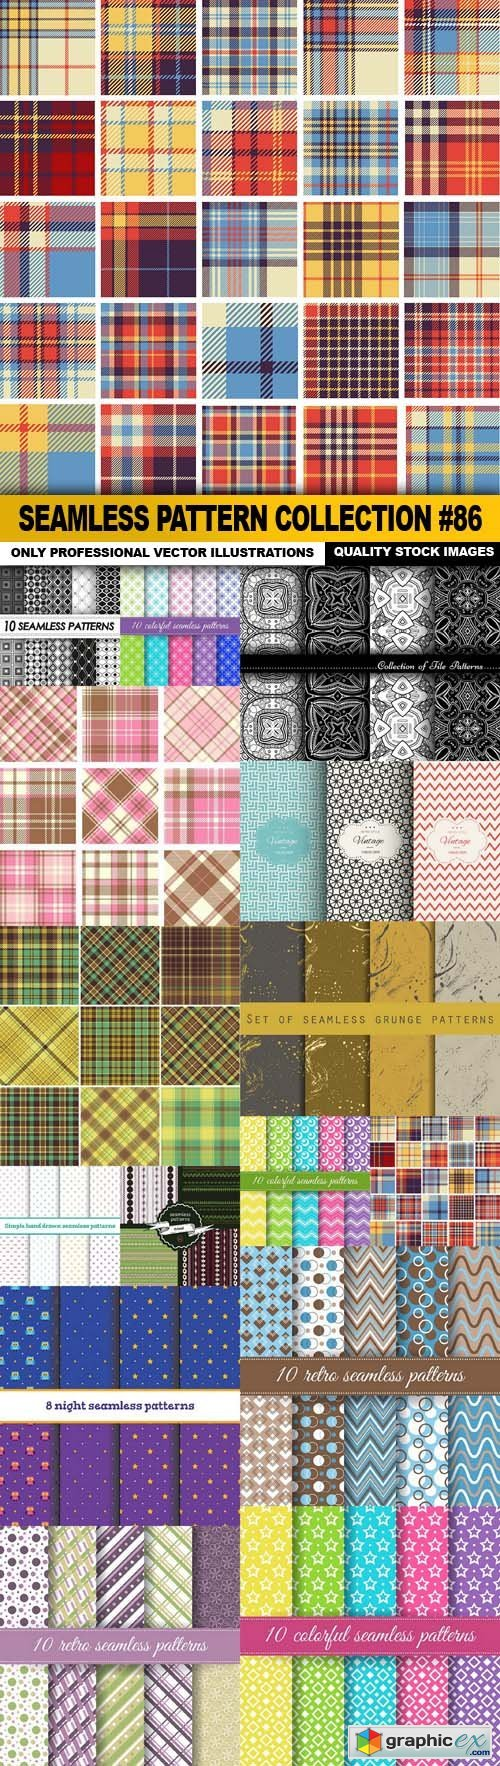 Seamless Pattern Collection #86 - 15 Vector